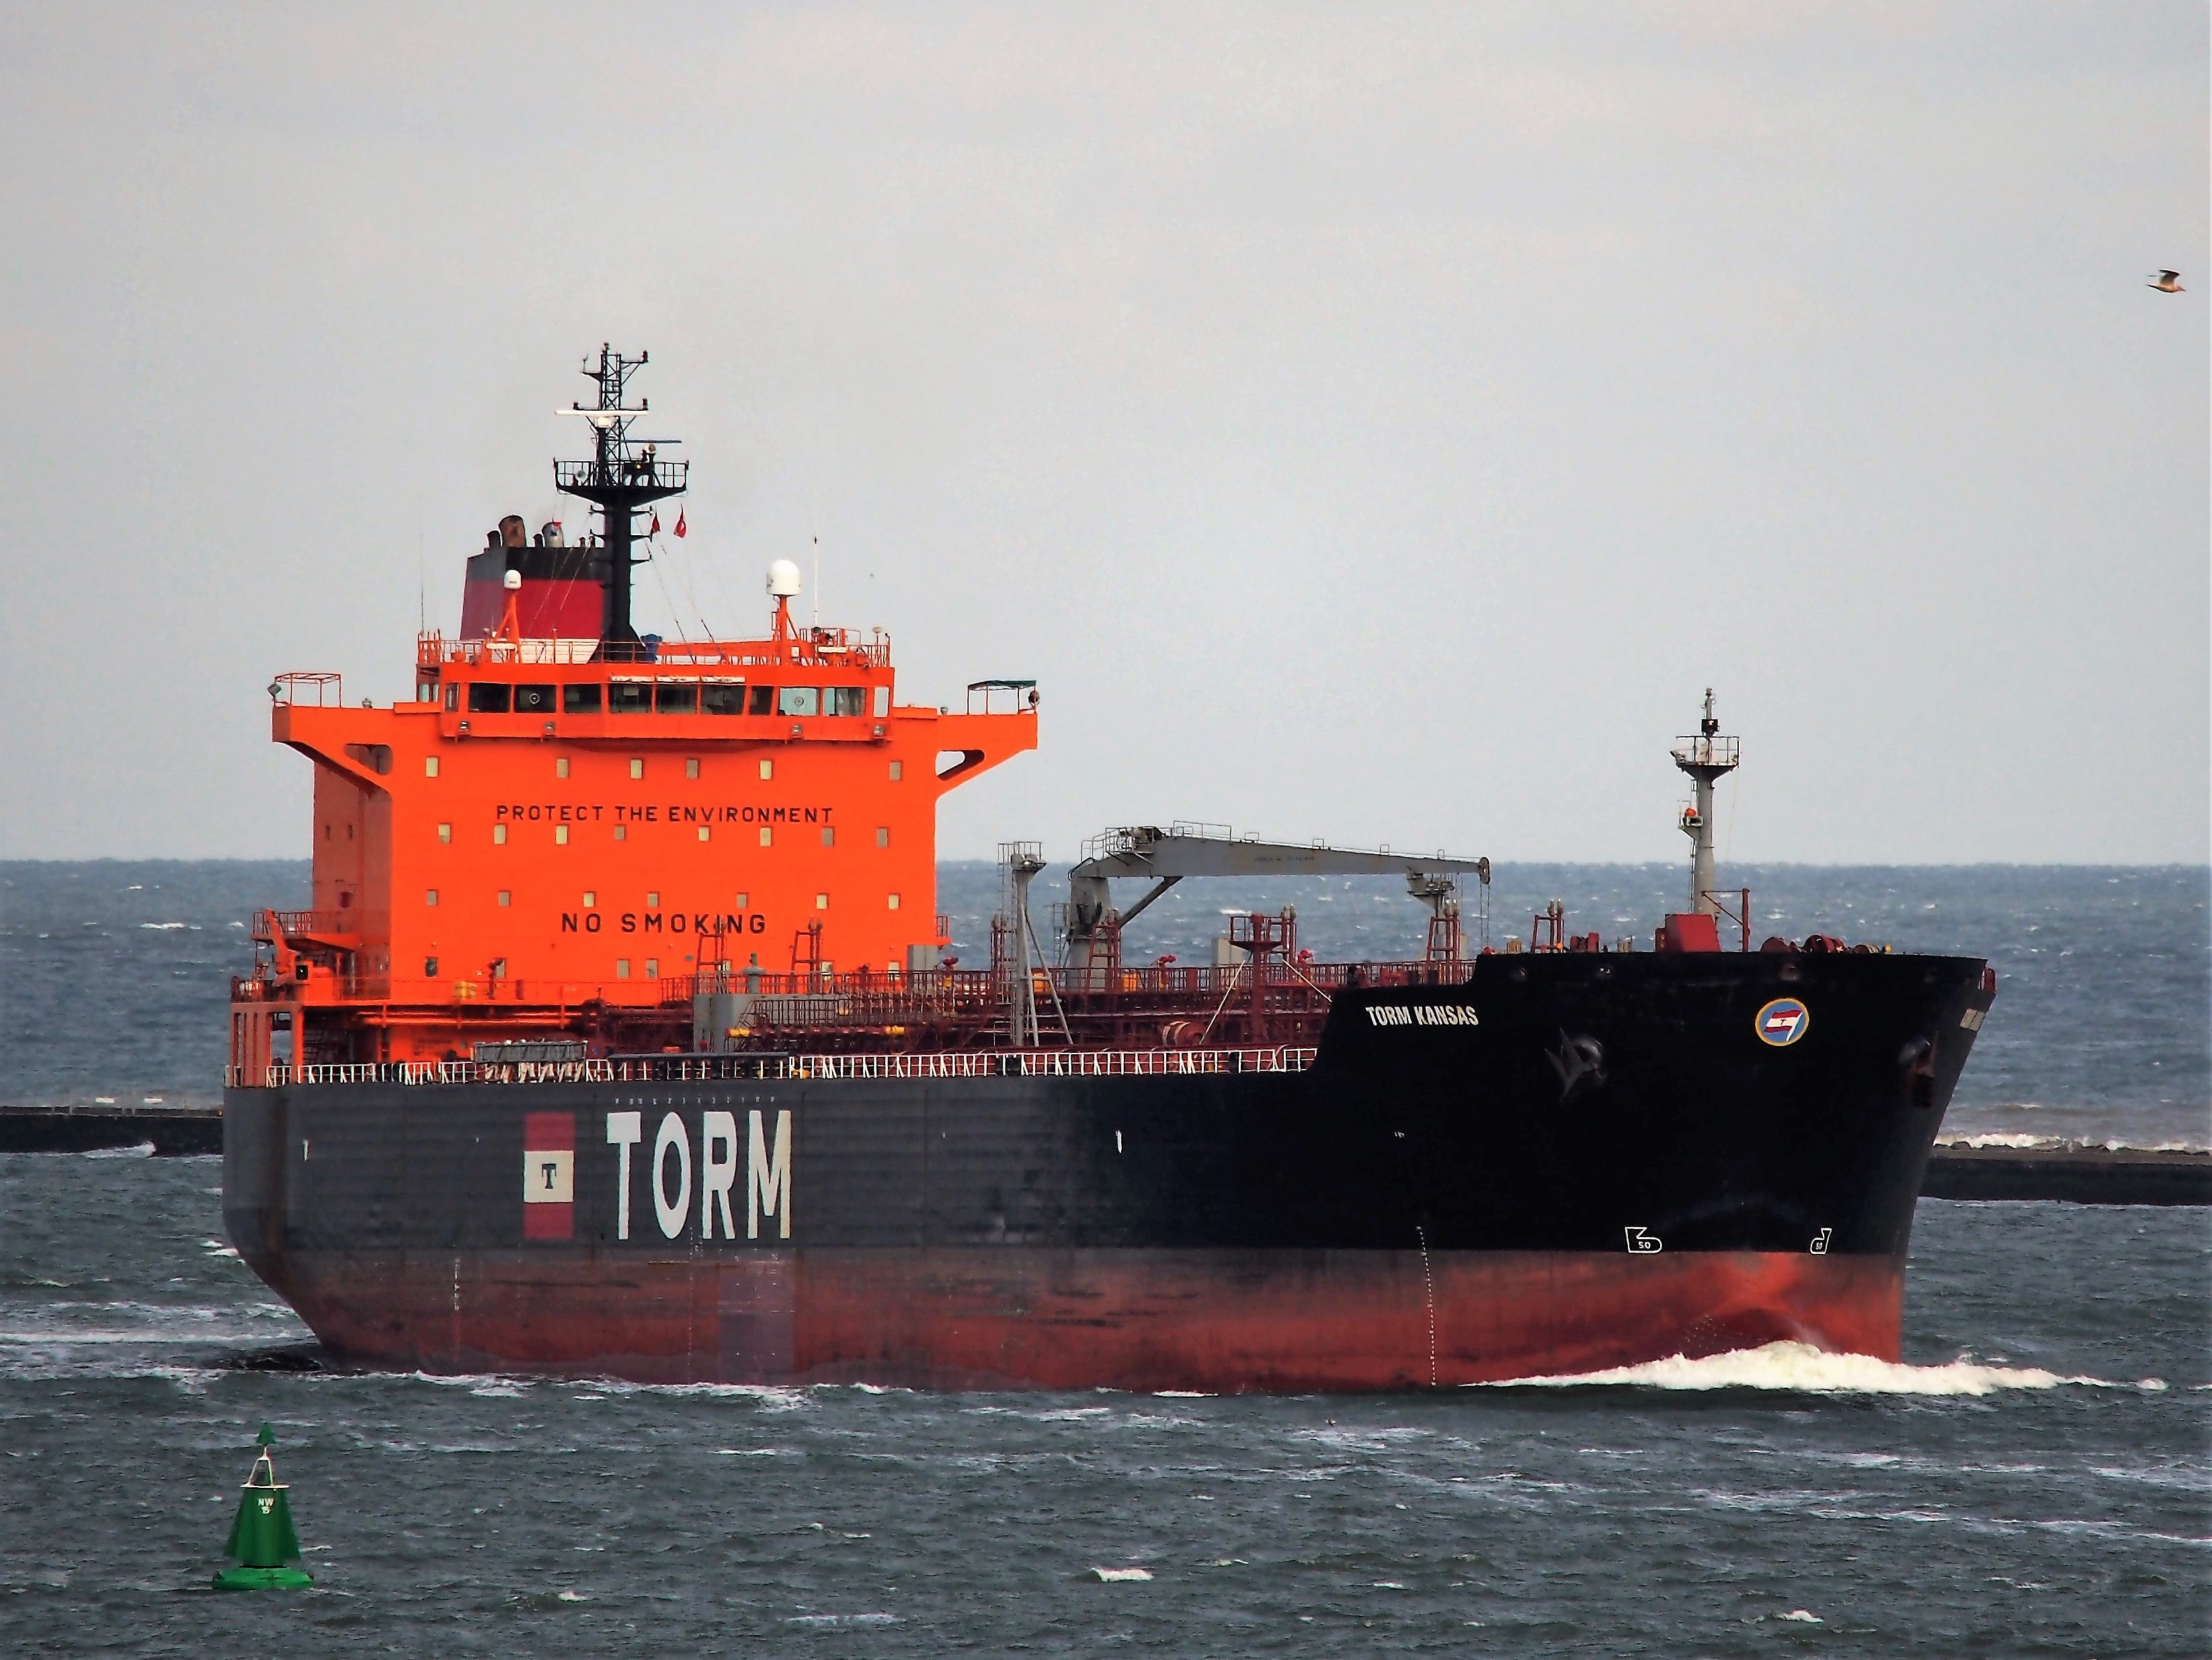 File:Torm Kansas (ship, 2006) IMO 9290646 Port of Rotterdam pic1 JPG